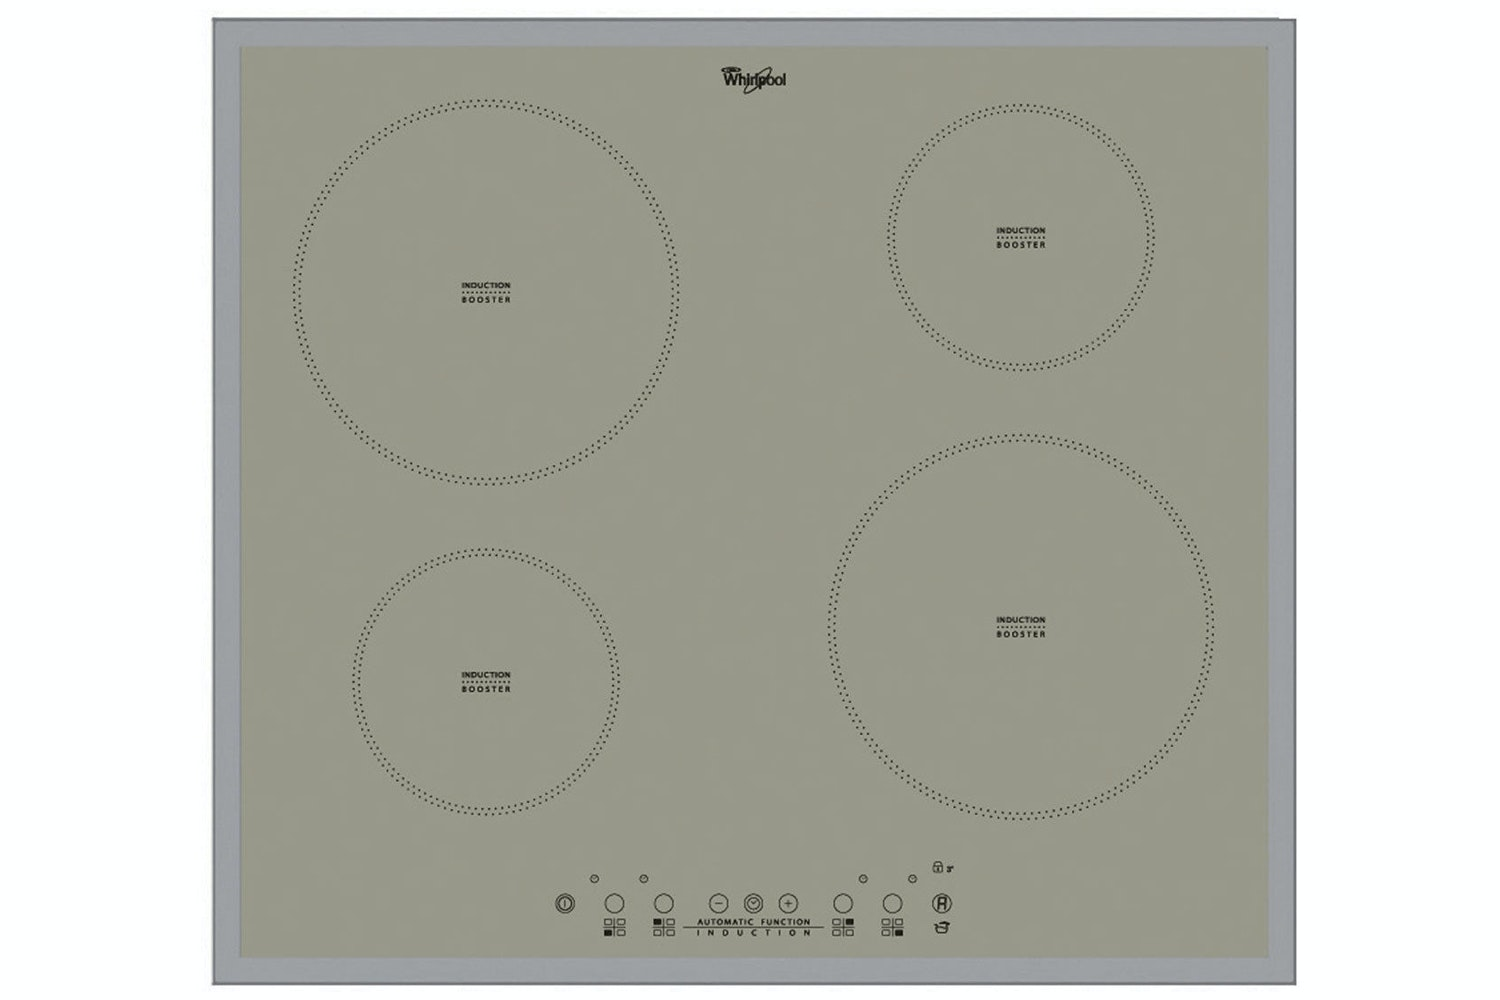 Whirlpool 60cm Induction Hob | ACM804/BA/S